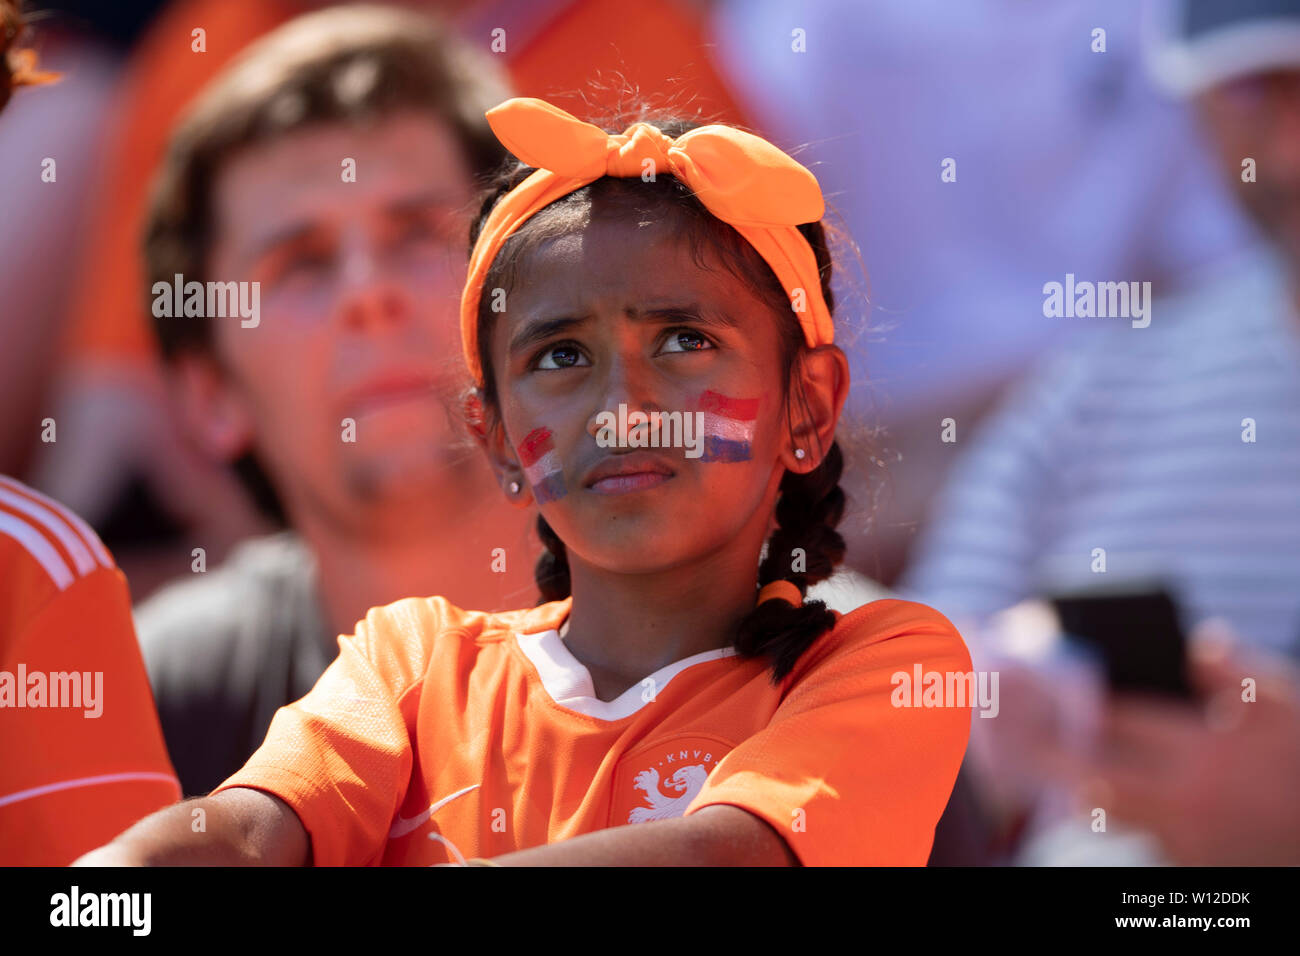 Valenciennes, France. 29th June, 2019. Supporters (Holland) during the FIFA Women's World Cup France 2019 Quarter-final match between Italy 0-2 Netherlands at Hainaut Stadium in Valenciennes, France, June29, 2019. Credit: Maurizio Borsari/AFLO/Alamy Live News Stock Photo